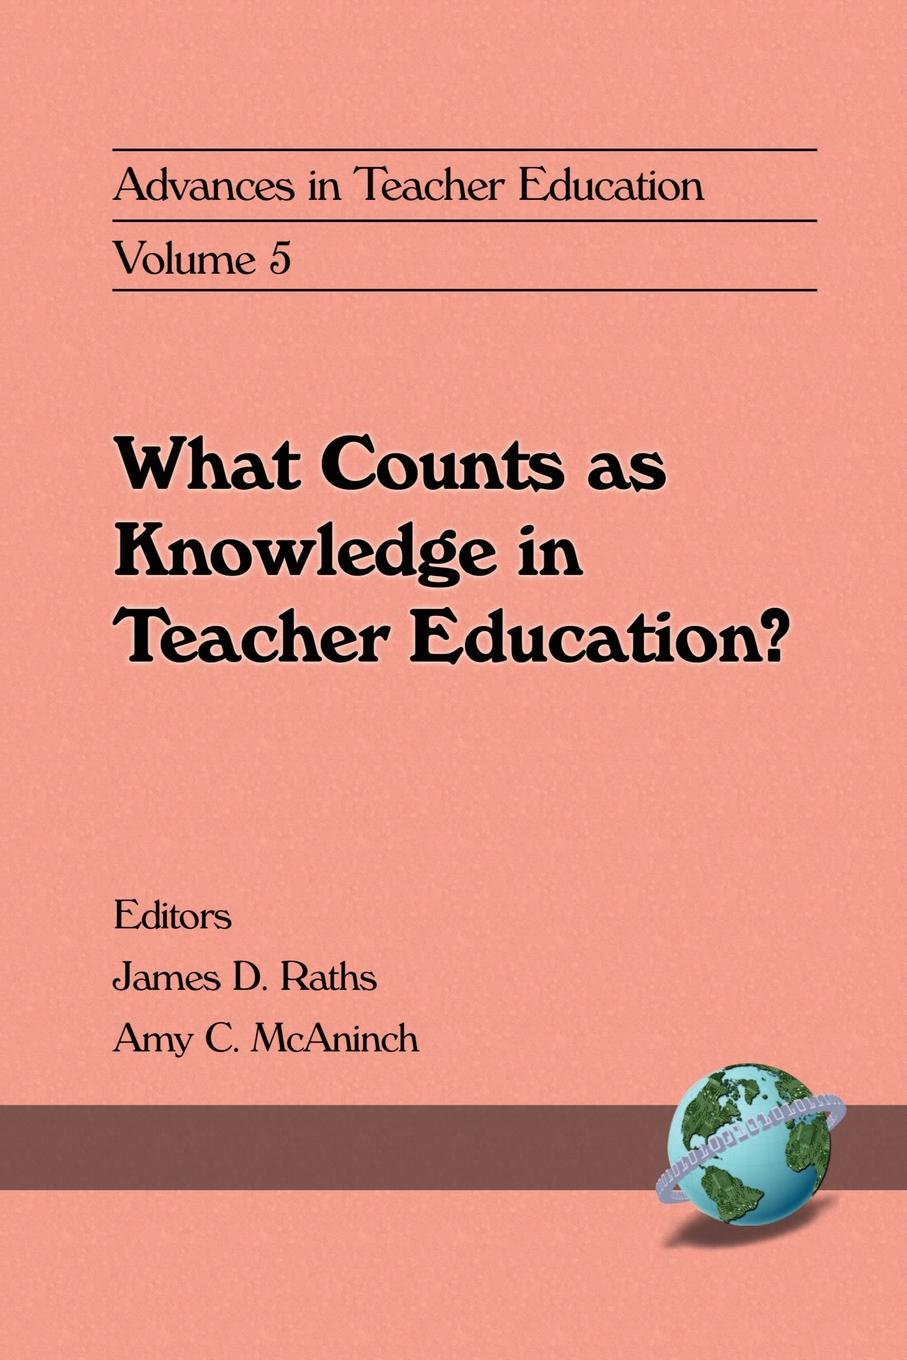 James D. Raths, Amy C. McAninch Advances in Teacher Education, Volume 5. What Counts as Knowledge in Teacher Education? amy gutmann democratic education revised edition